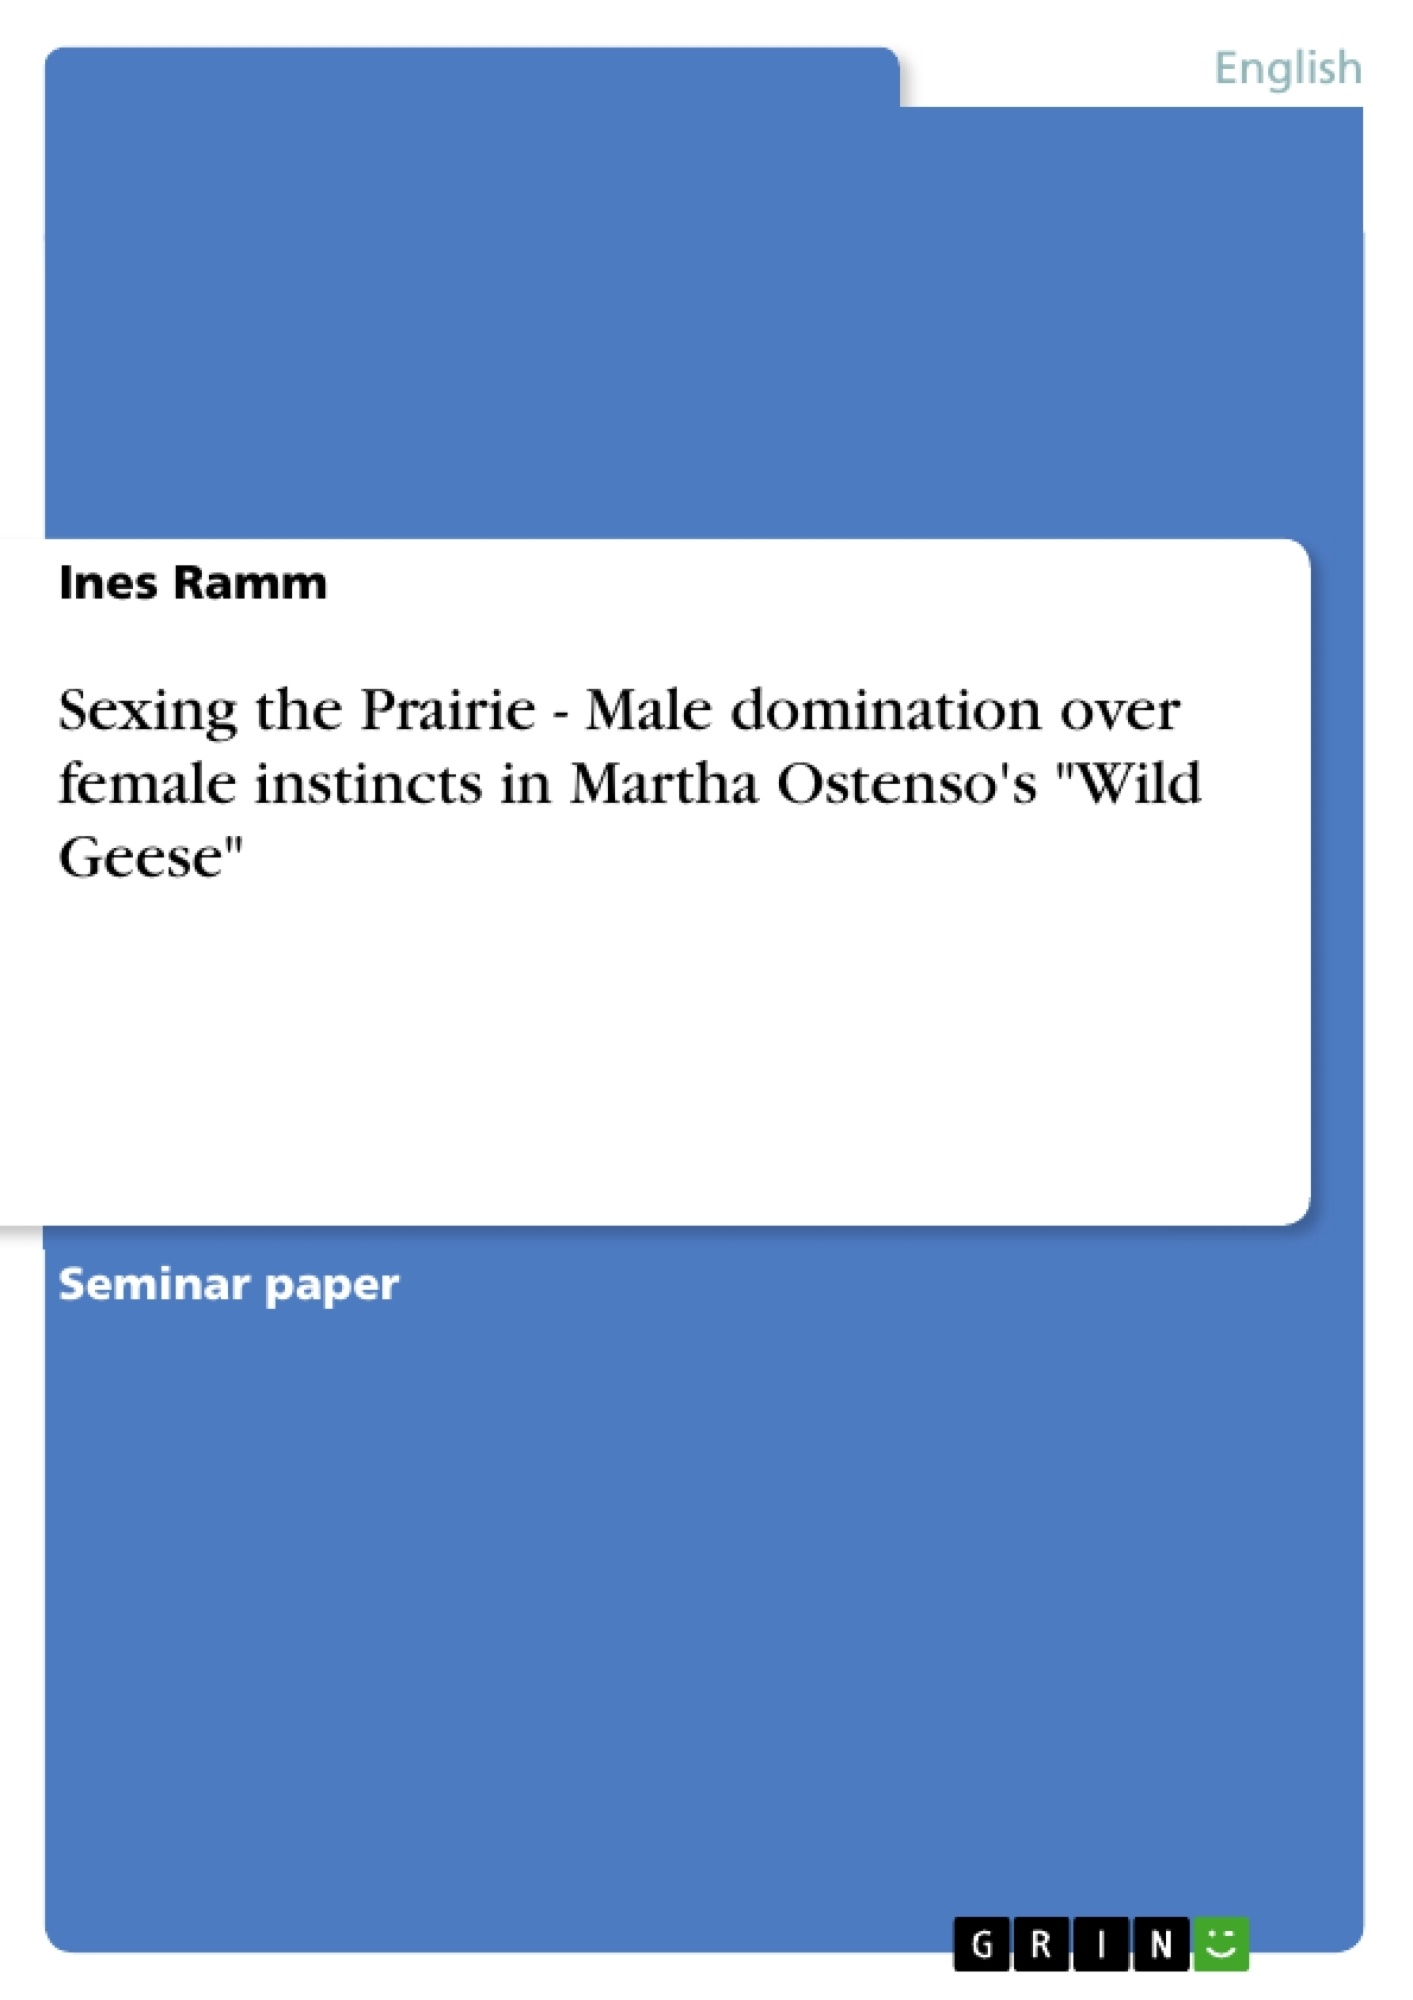 """Title: Sexing the Prairie - Male domination over female instincts in Martha Ostenso's """"Wild Geese"""""""